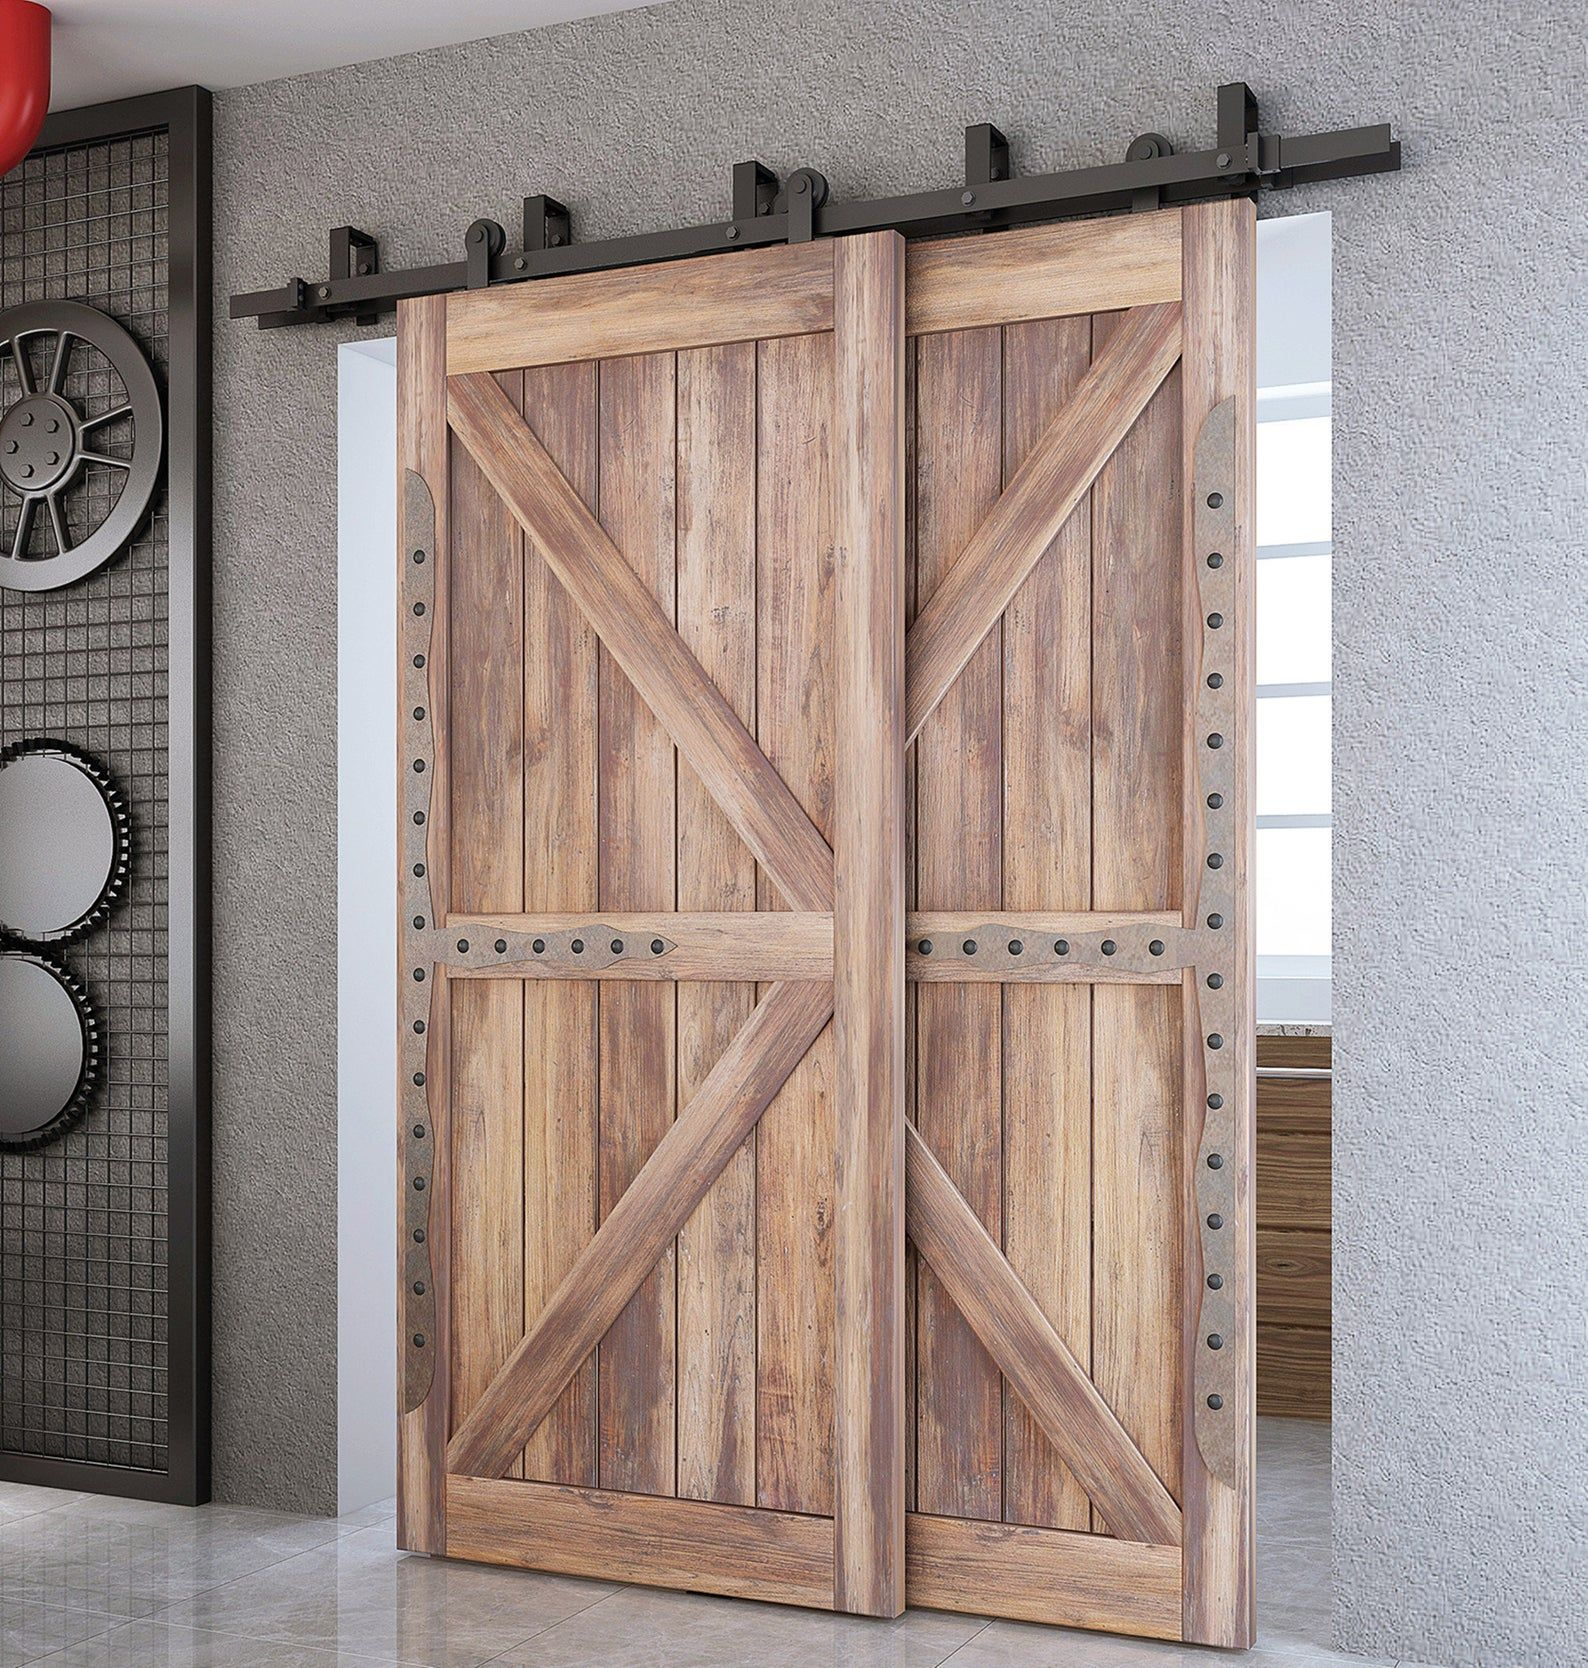 Diyhd Top Mount Bypass Double Sliding Barn Wood Door Track Etsy In 2020 Bypass Barn Door Double Sliding Barn Doors Double Sliding Doors